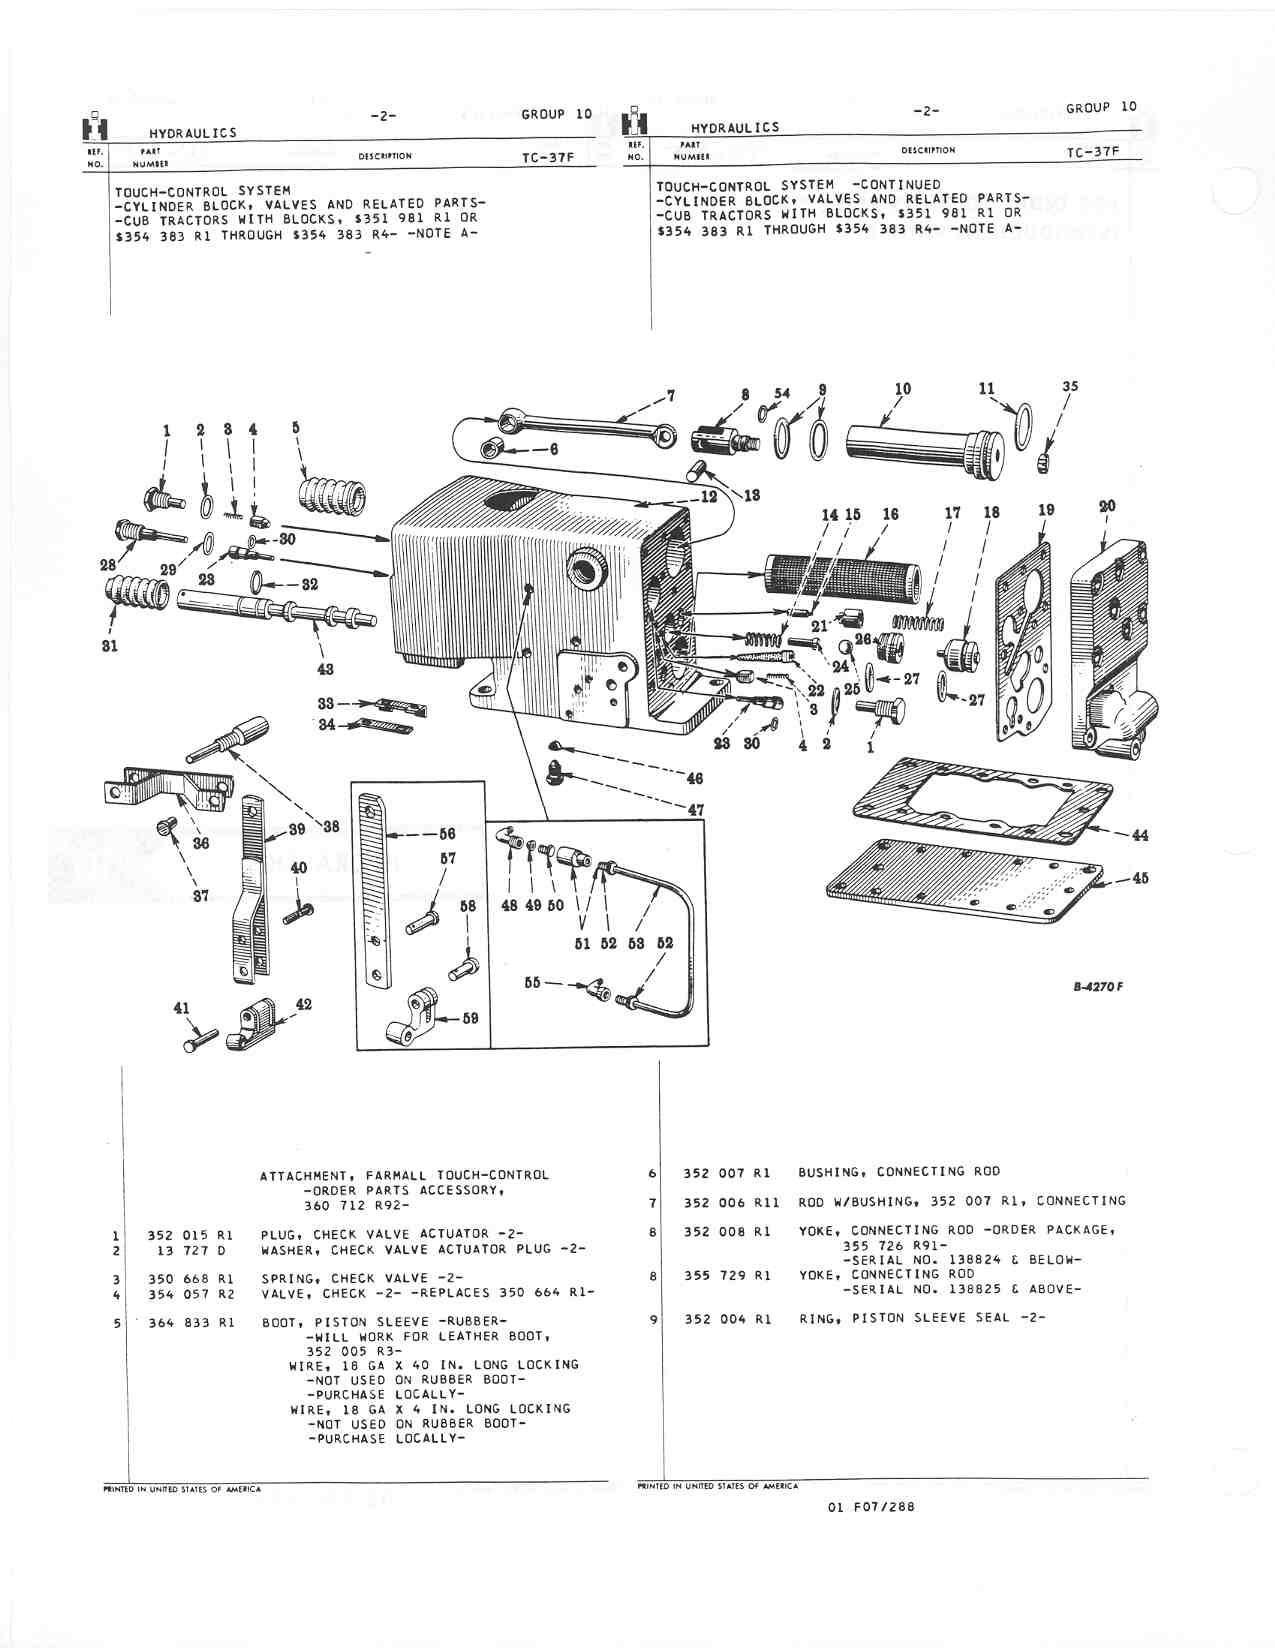 Wiring Diagram For 1944 Ford 9n Tractor